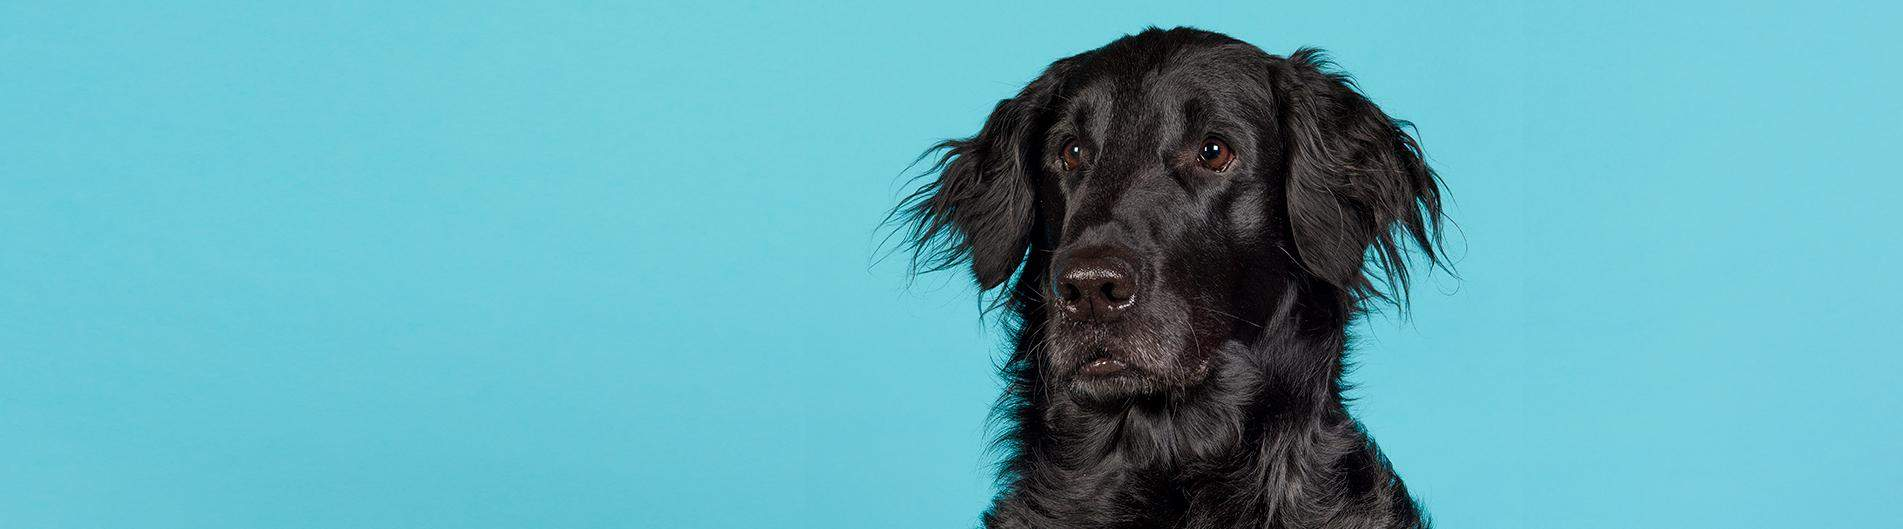 Flat - Coated Retriever -רטריבר חלק שיער